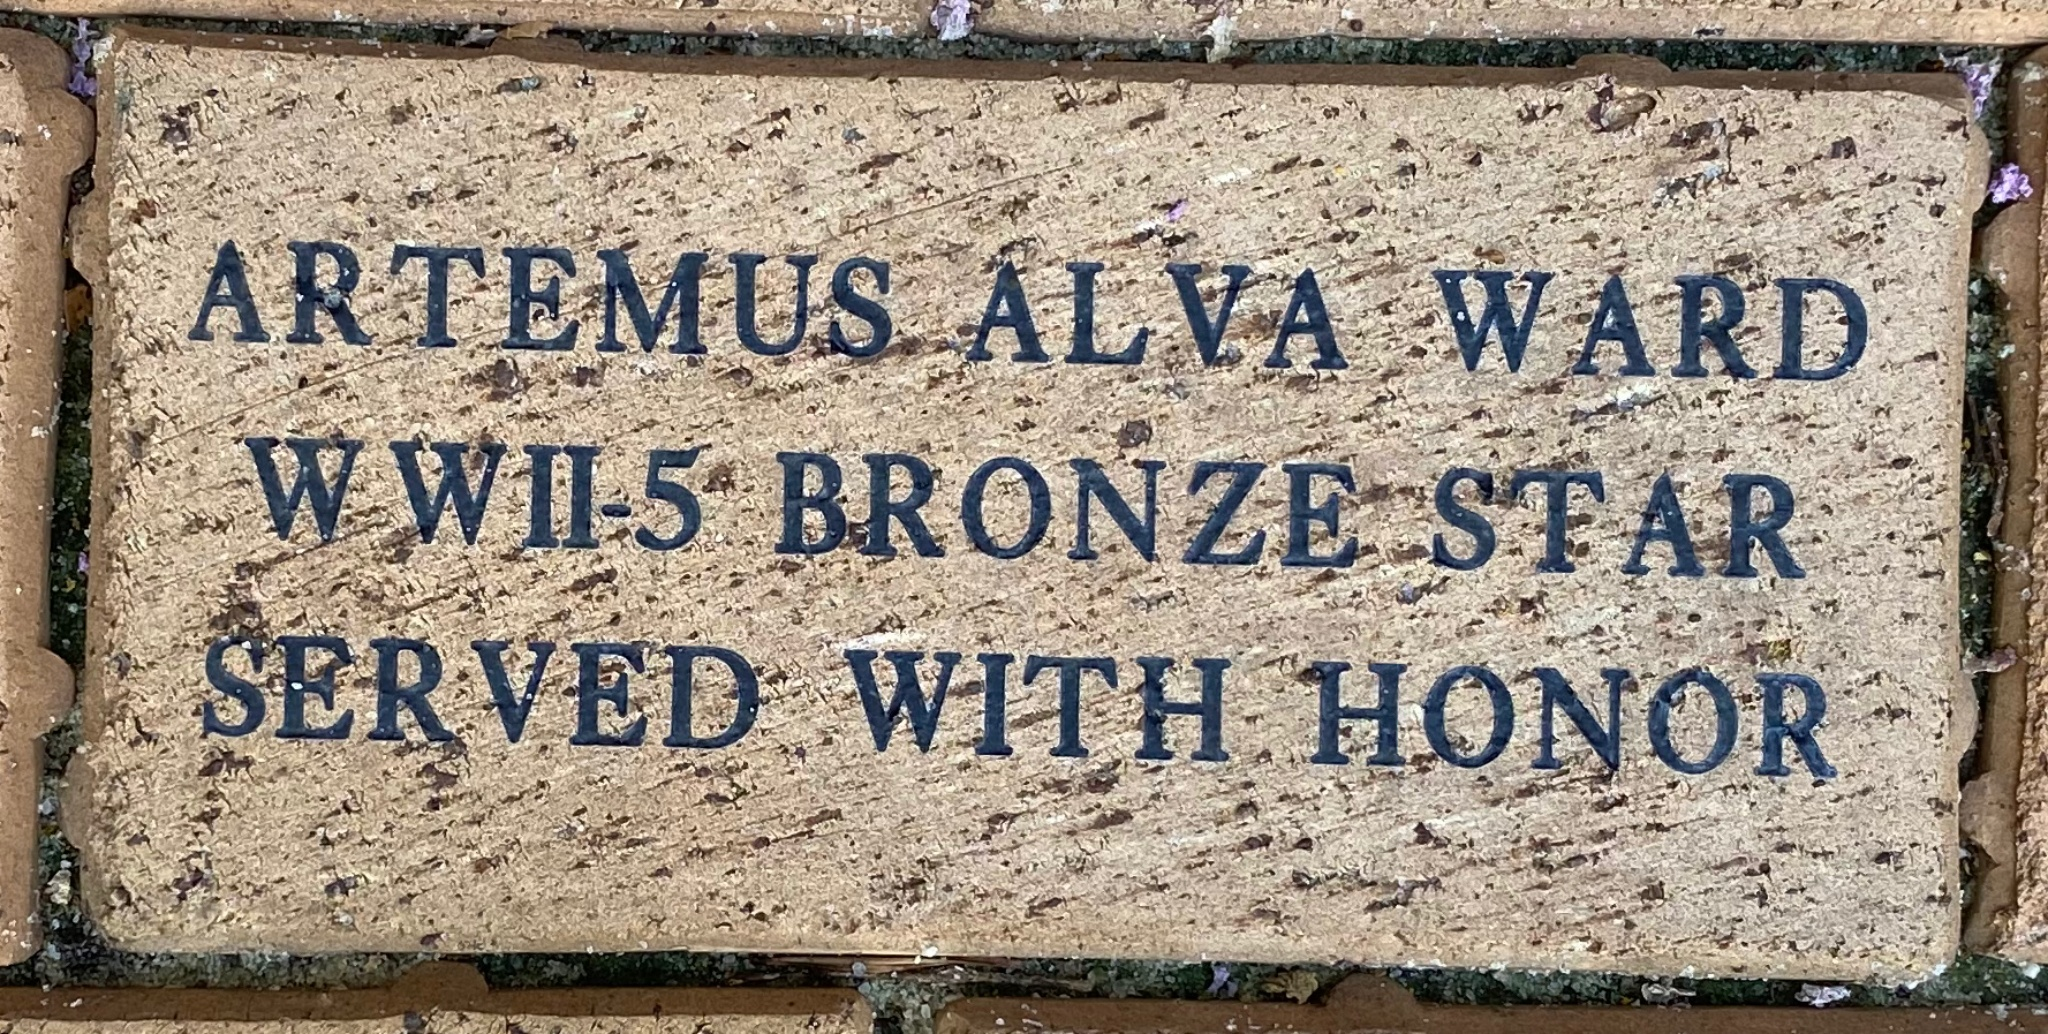 ARTEMUS ALVA WARD WWII-5 BRONZE STARS SERVED WITH HONOR